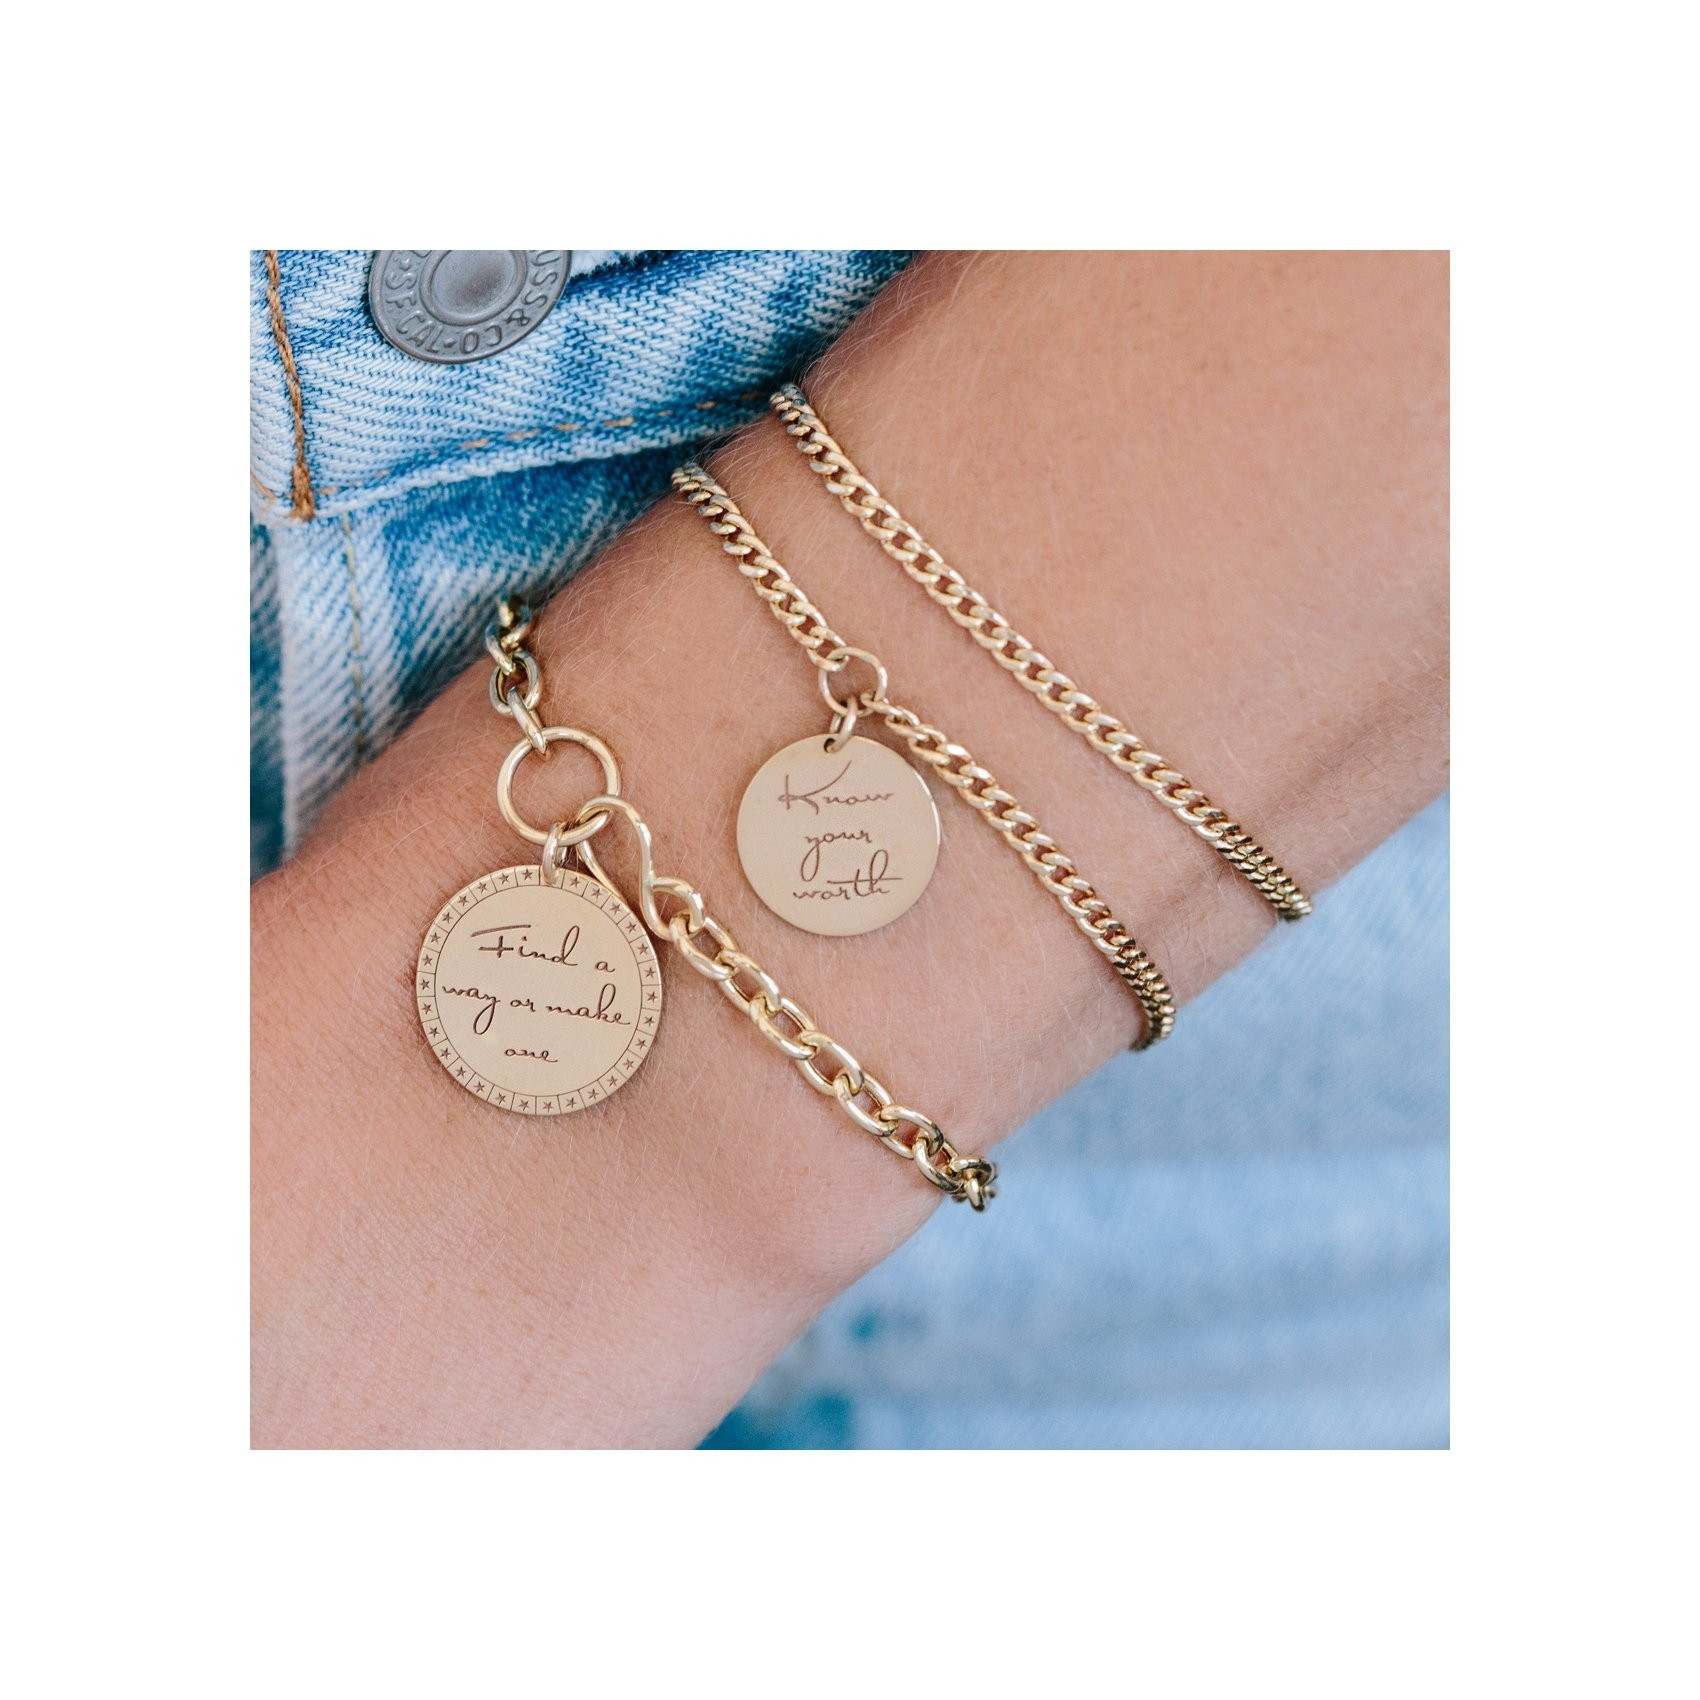 """Zoë Chicco Small Mantra Charm Bracelet """"Know your worth""""  on Model"""